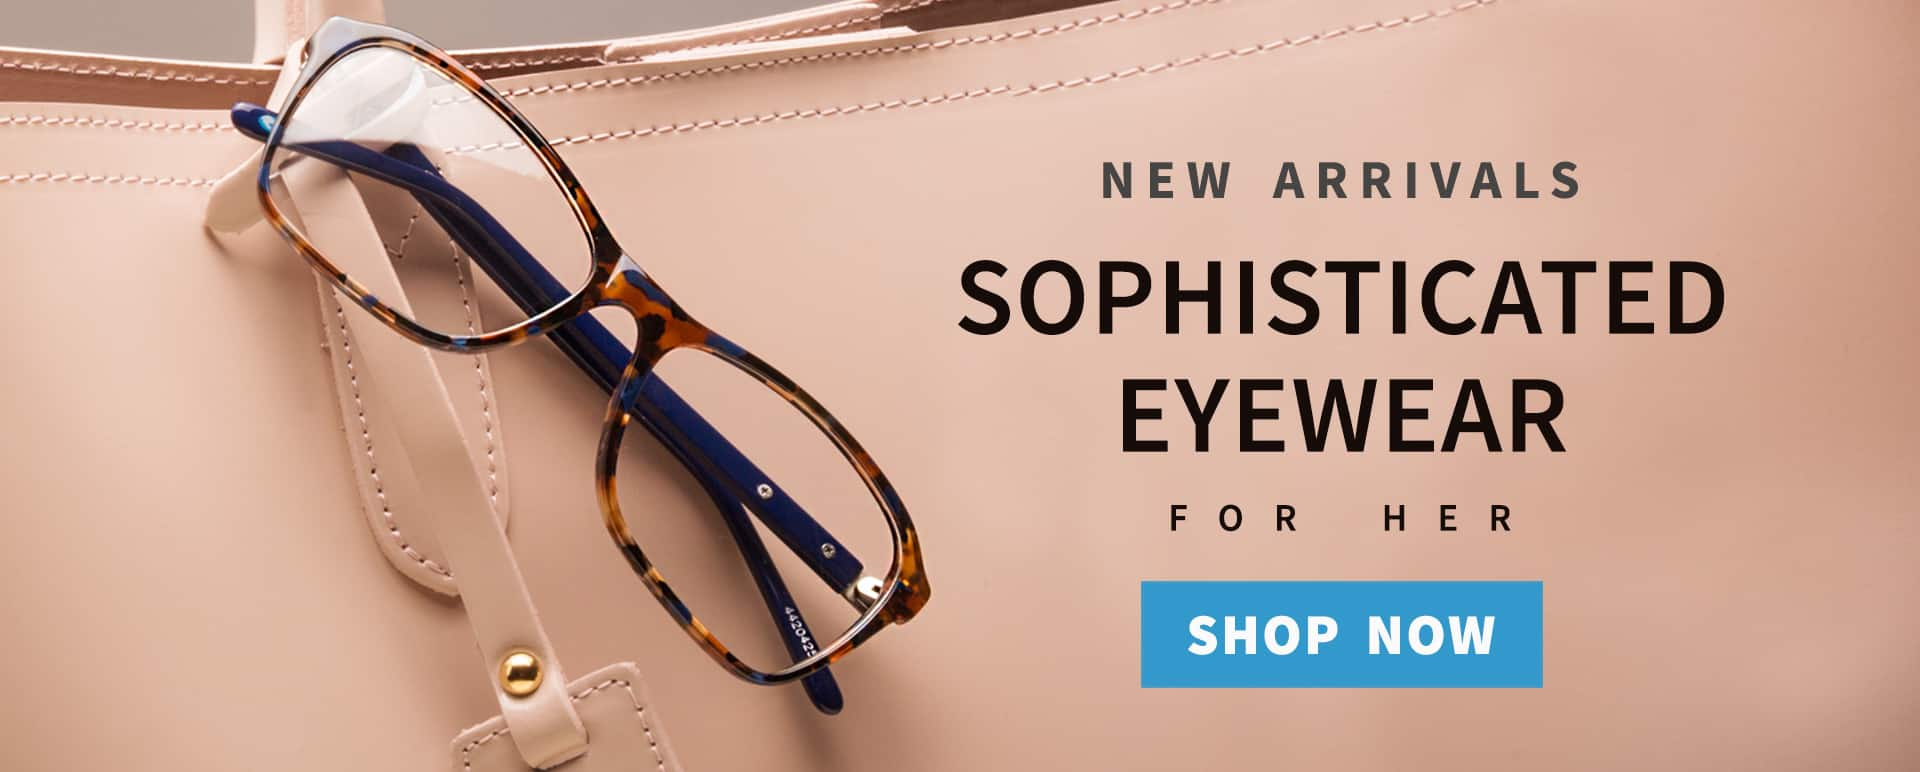 Sophisticated Eyewear| Zenni Optical